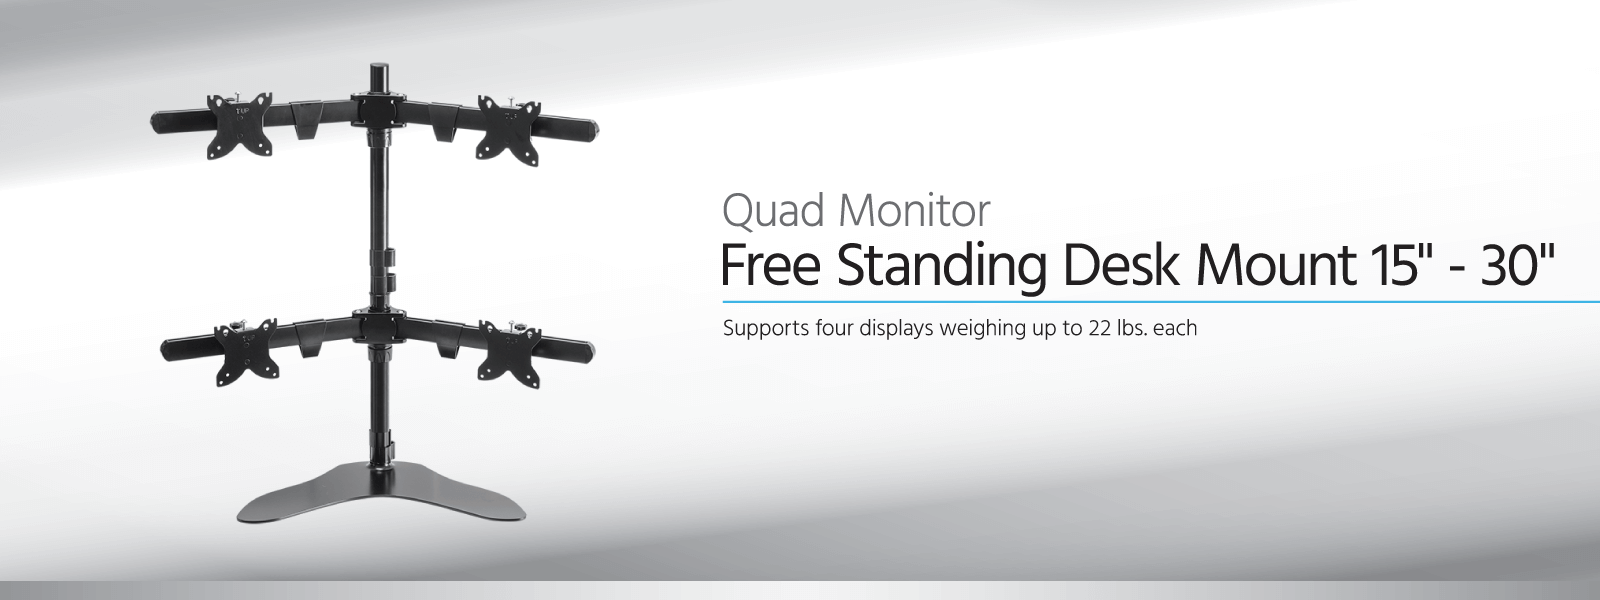 Quad Monitor Free Standing Desk Mount